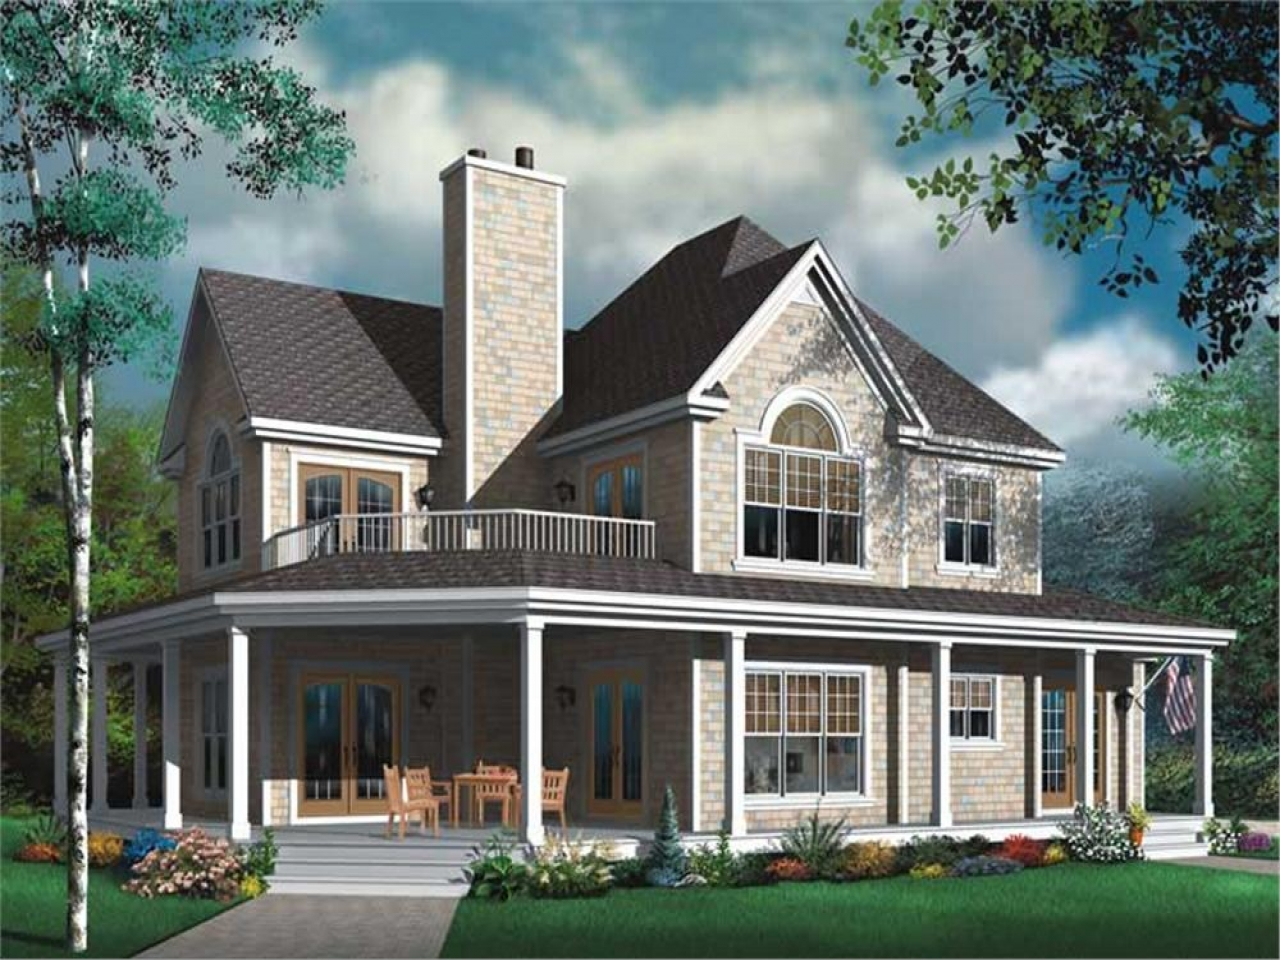 Two Story House Plans With Wrap Around Porch Two Story